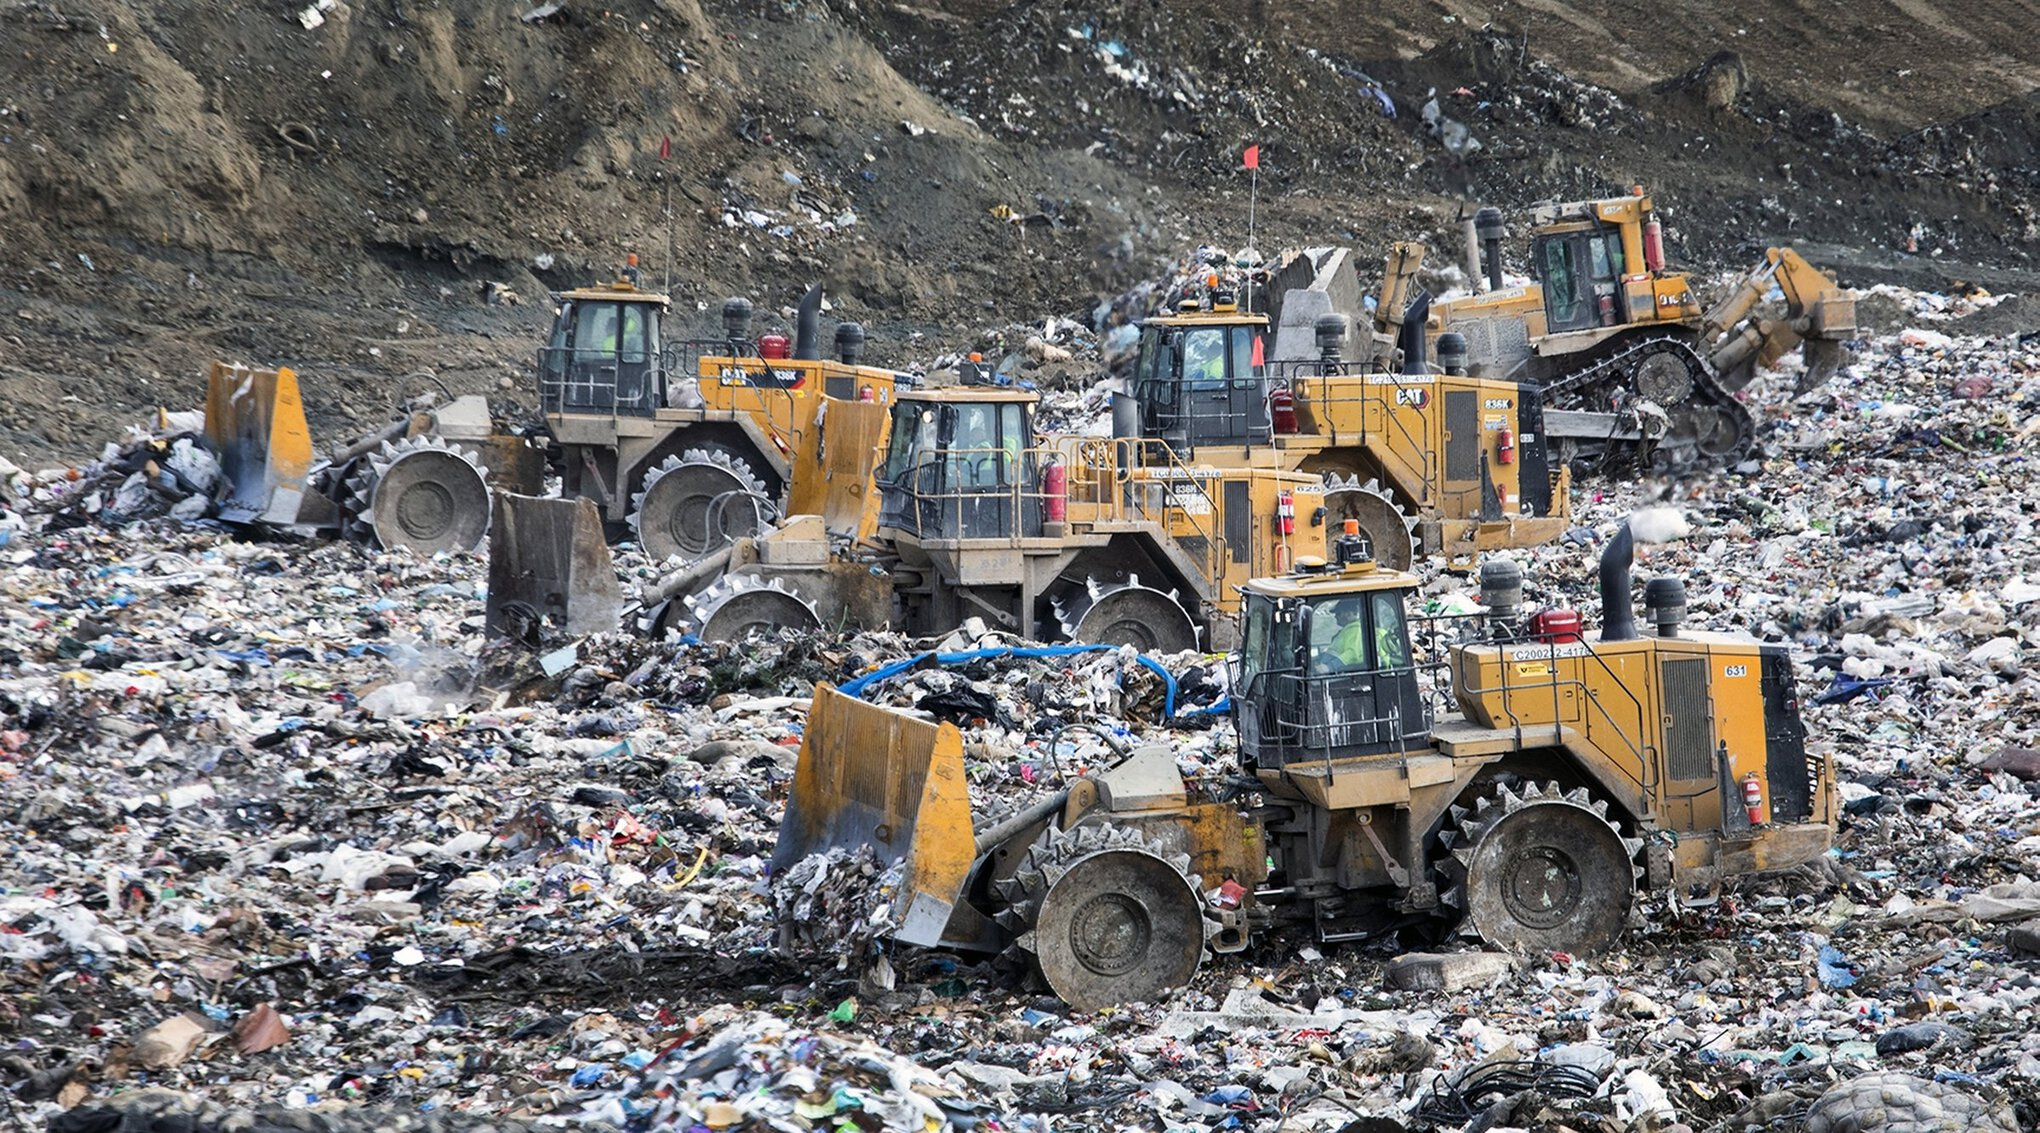 Each day more than 12 million pounds of garbage is dumped, spread, compacted and finally covered with a layer of dirt at the Klickitat County landfill owned by Republic Services. It sits on a plateau above the Columbia River in southern Washington. Credit: Steve Ringman / The Seattle Times